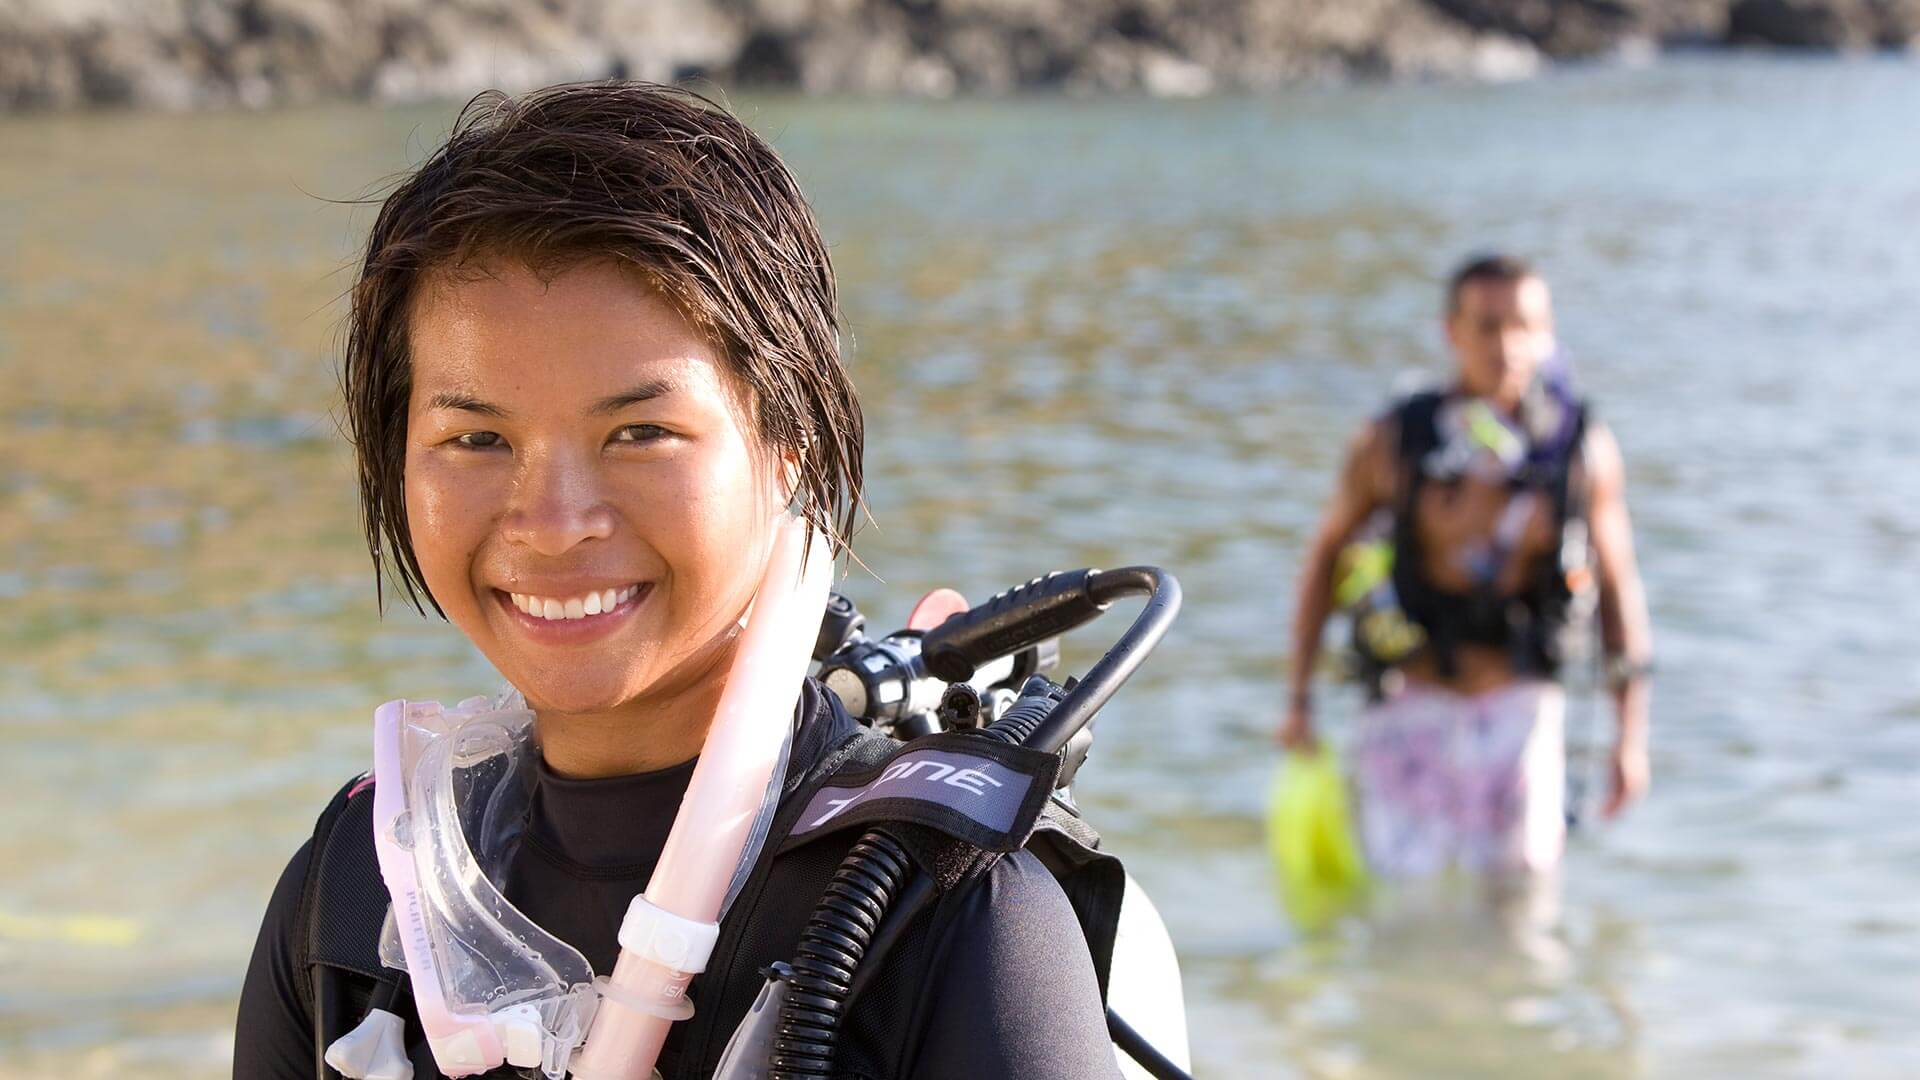 We Are PADI: The Way the World Learns to Dive